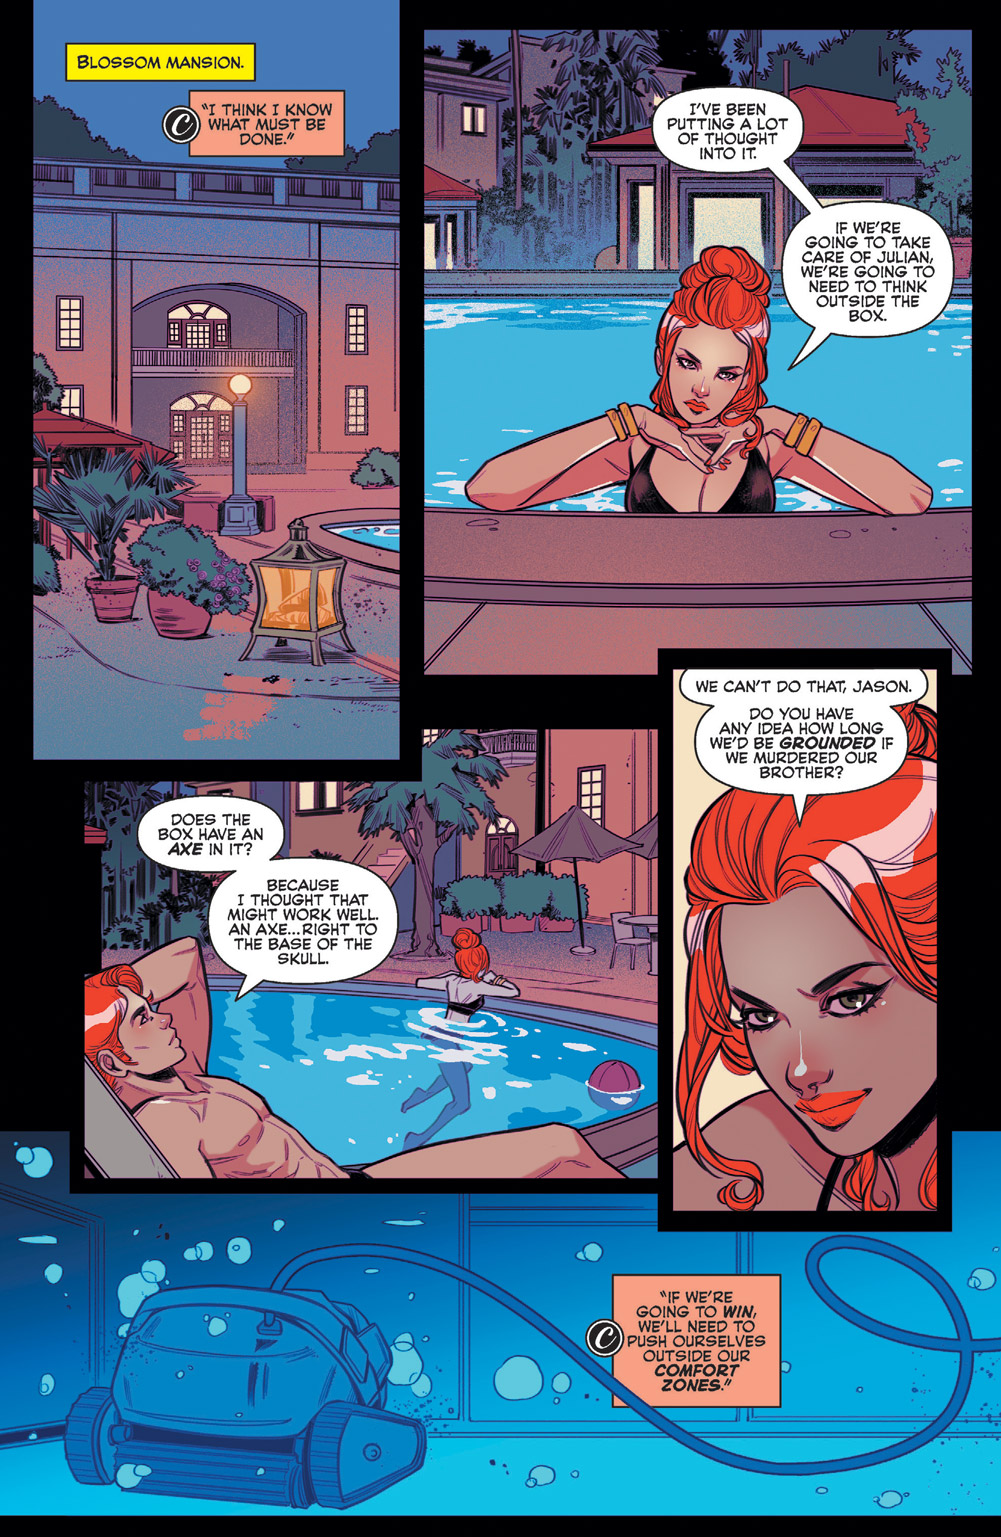 Cheryl and Jason talking at the pool in Blossoms 666 #5.